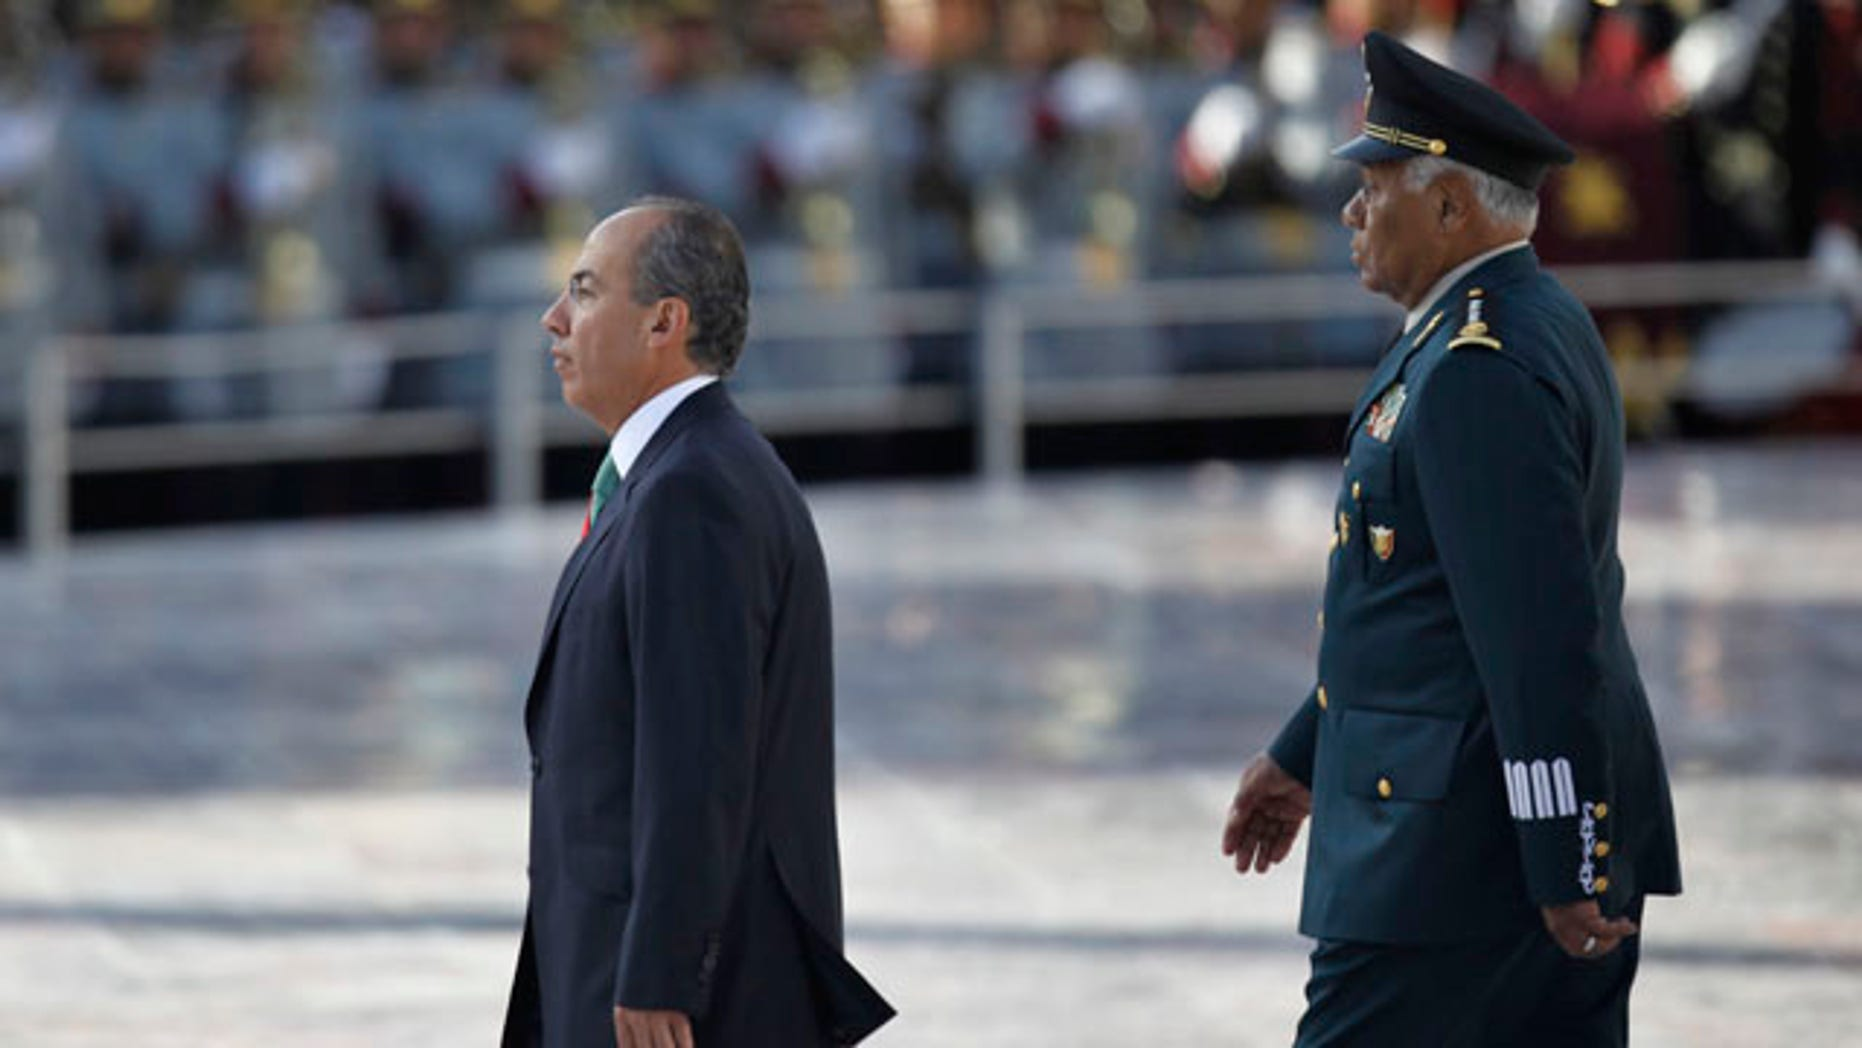 """September 13: Mexico's President Felipe Calderon, walks along Mexico's Defense Secretary Guillermo Galvan during the anniversary of the battle of the """"Ninos Heroes"""", or Heroic Childre in Mexico City.  The """"Ninos Heroes"""", or Heroic Children were a group of young cadets who died defending the military academy in Mexico City during the Mexican-American war in 1847. (AP)"""